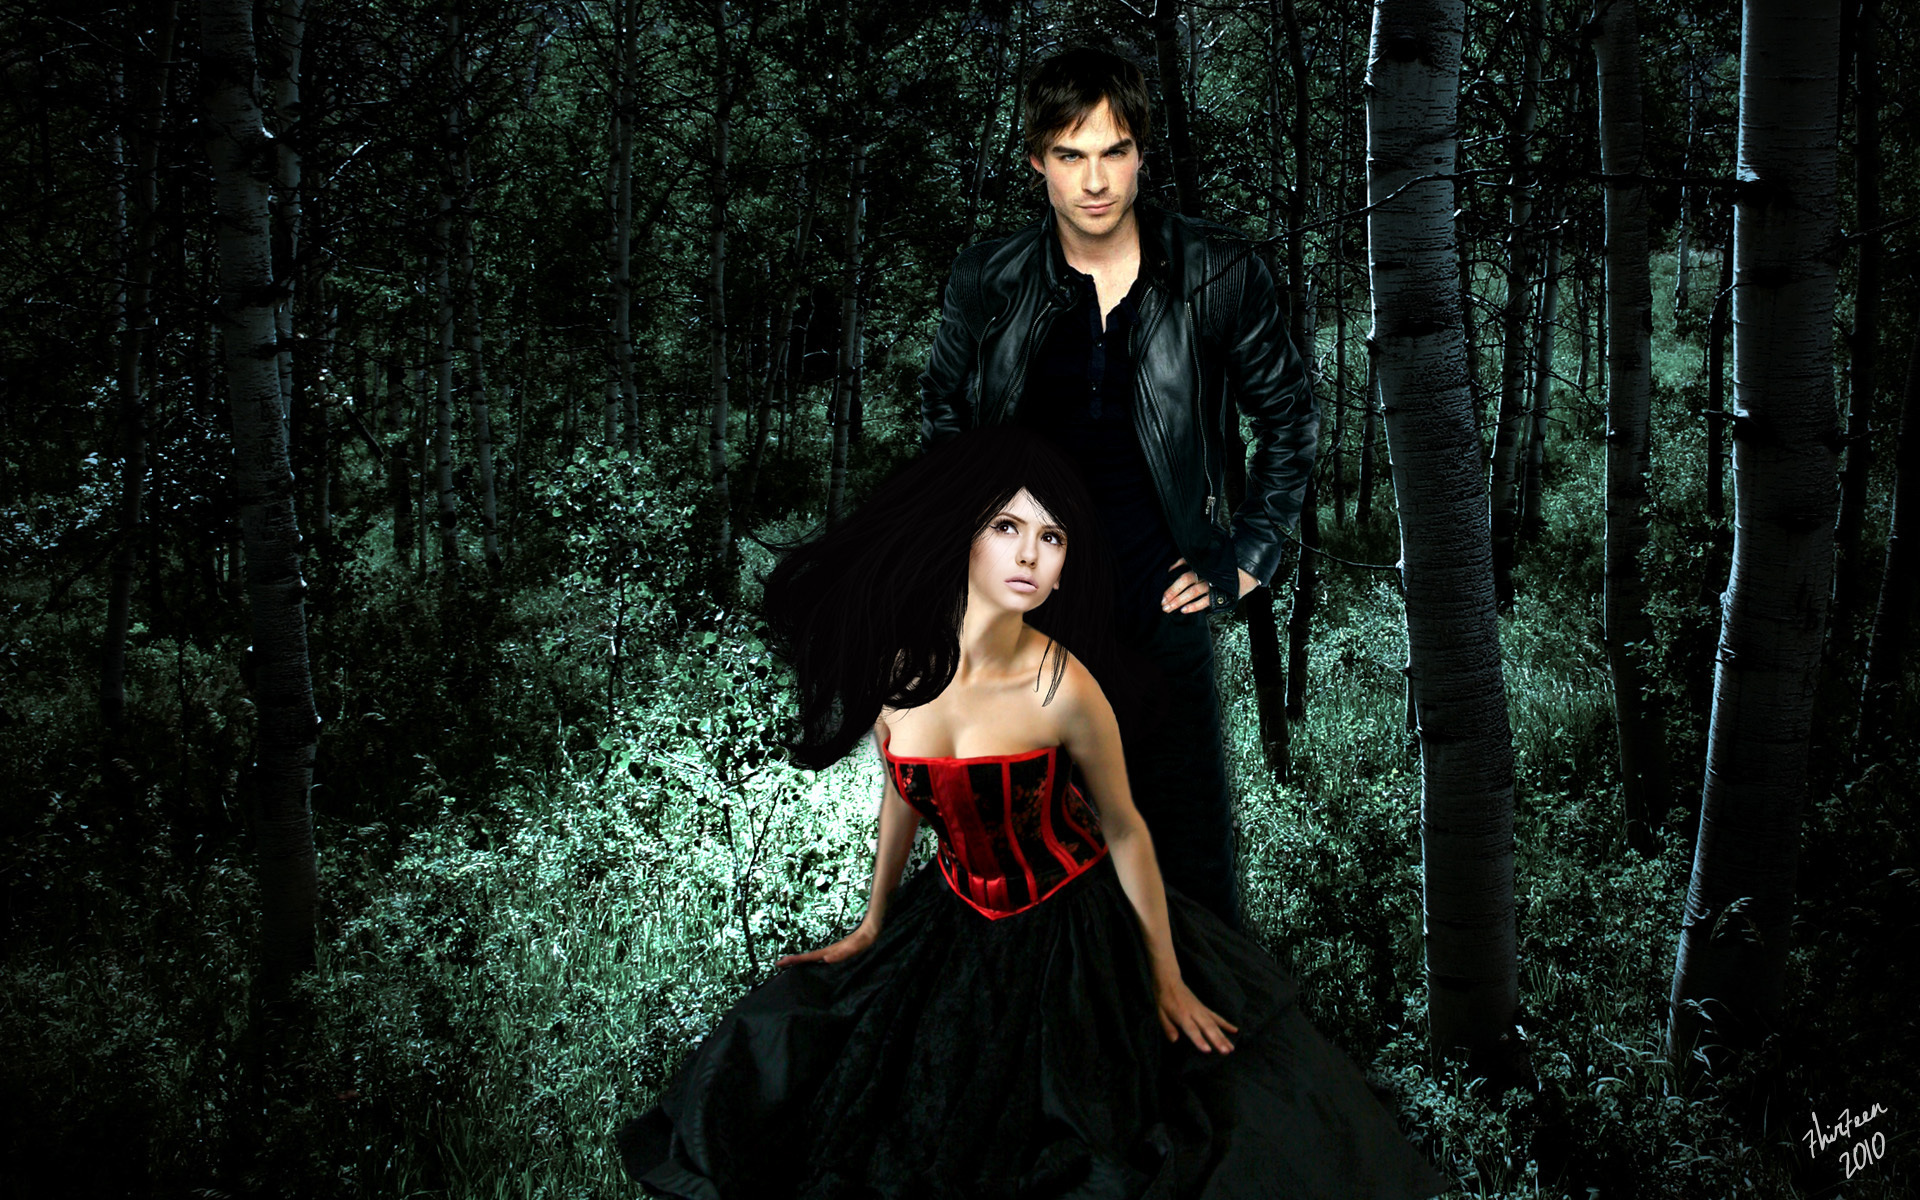 http://images4.fanpop.com/image/photos/15900000/Symphonies-of-Blinding-Light-the-vampire-diaries-15928544-1920-1200.jpg